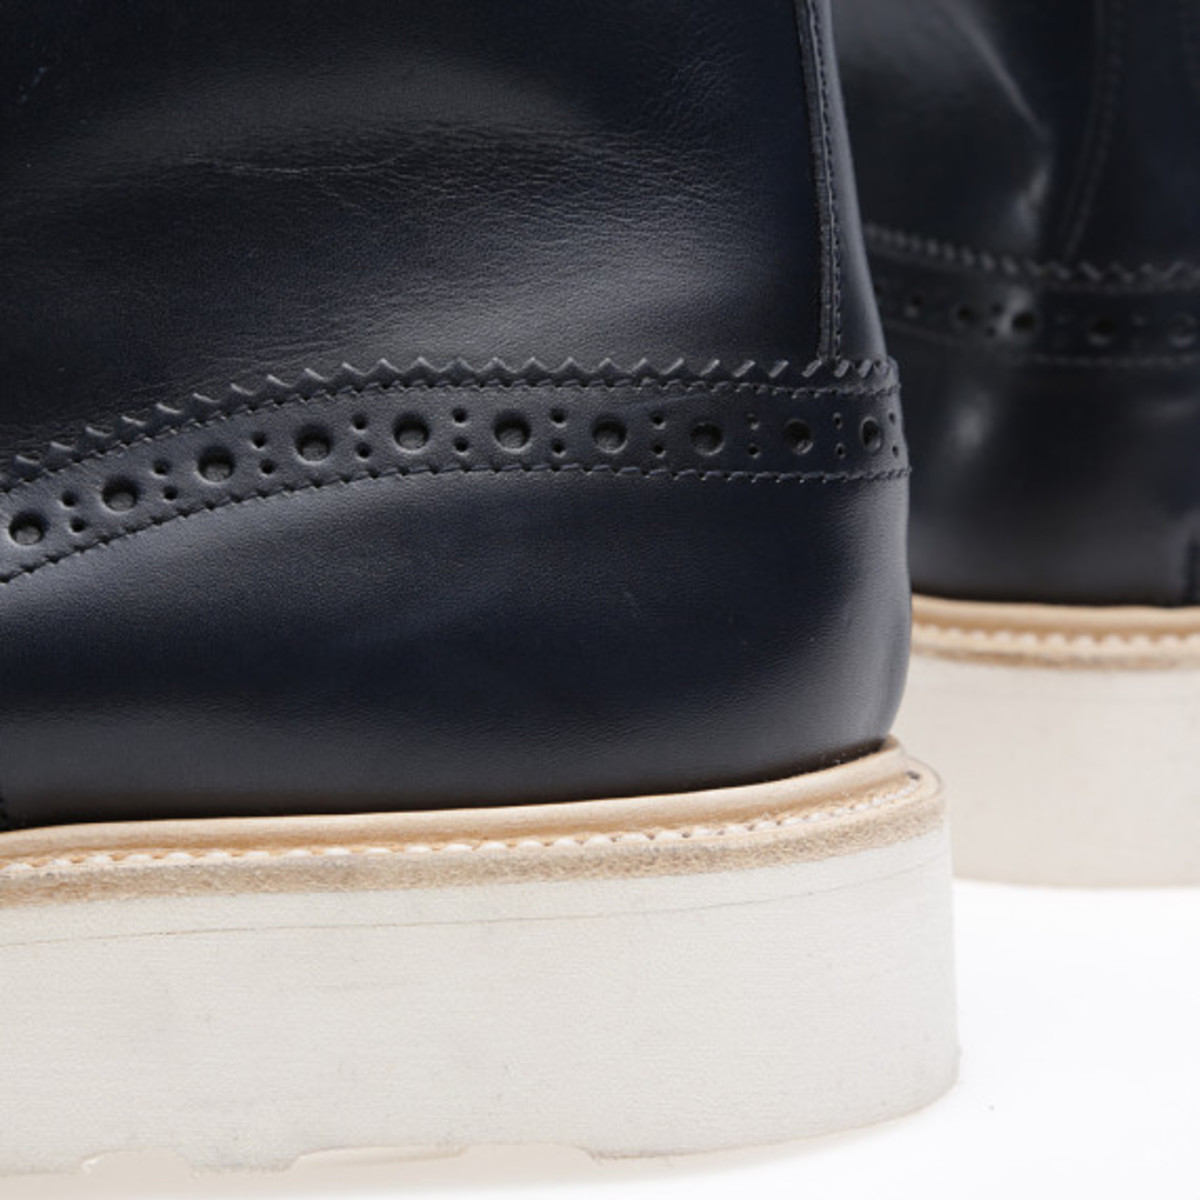 end-trickers-vibram-sole-stow-boot-34